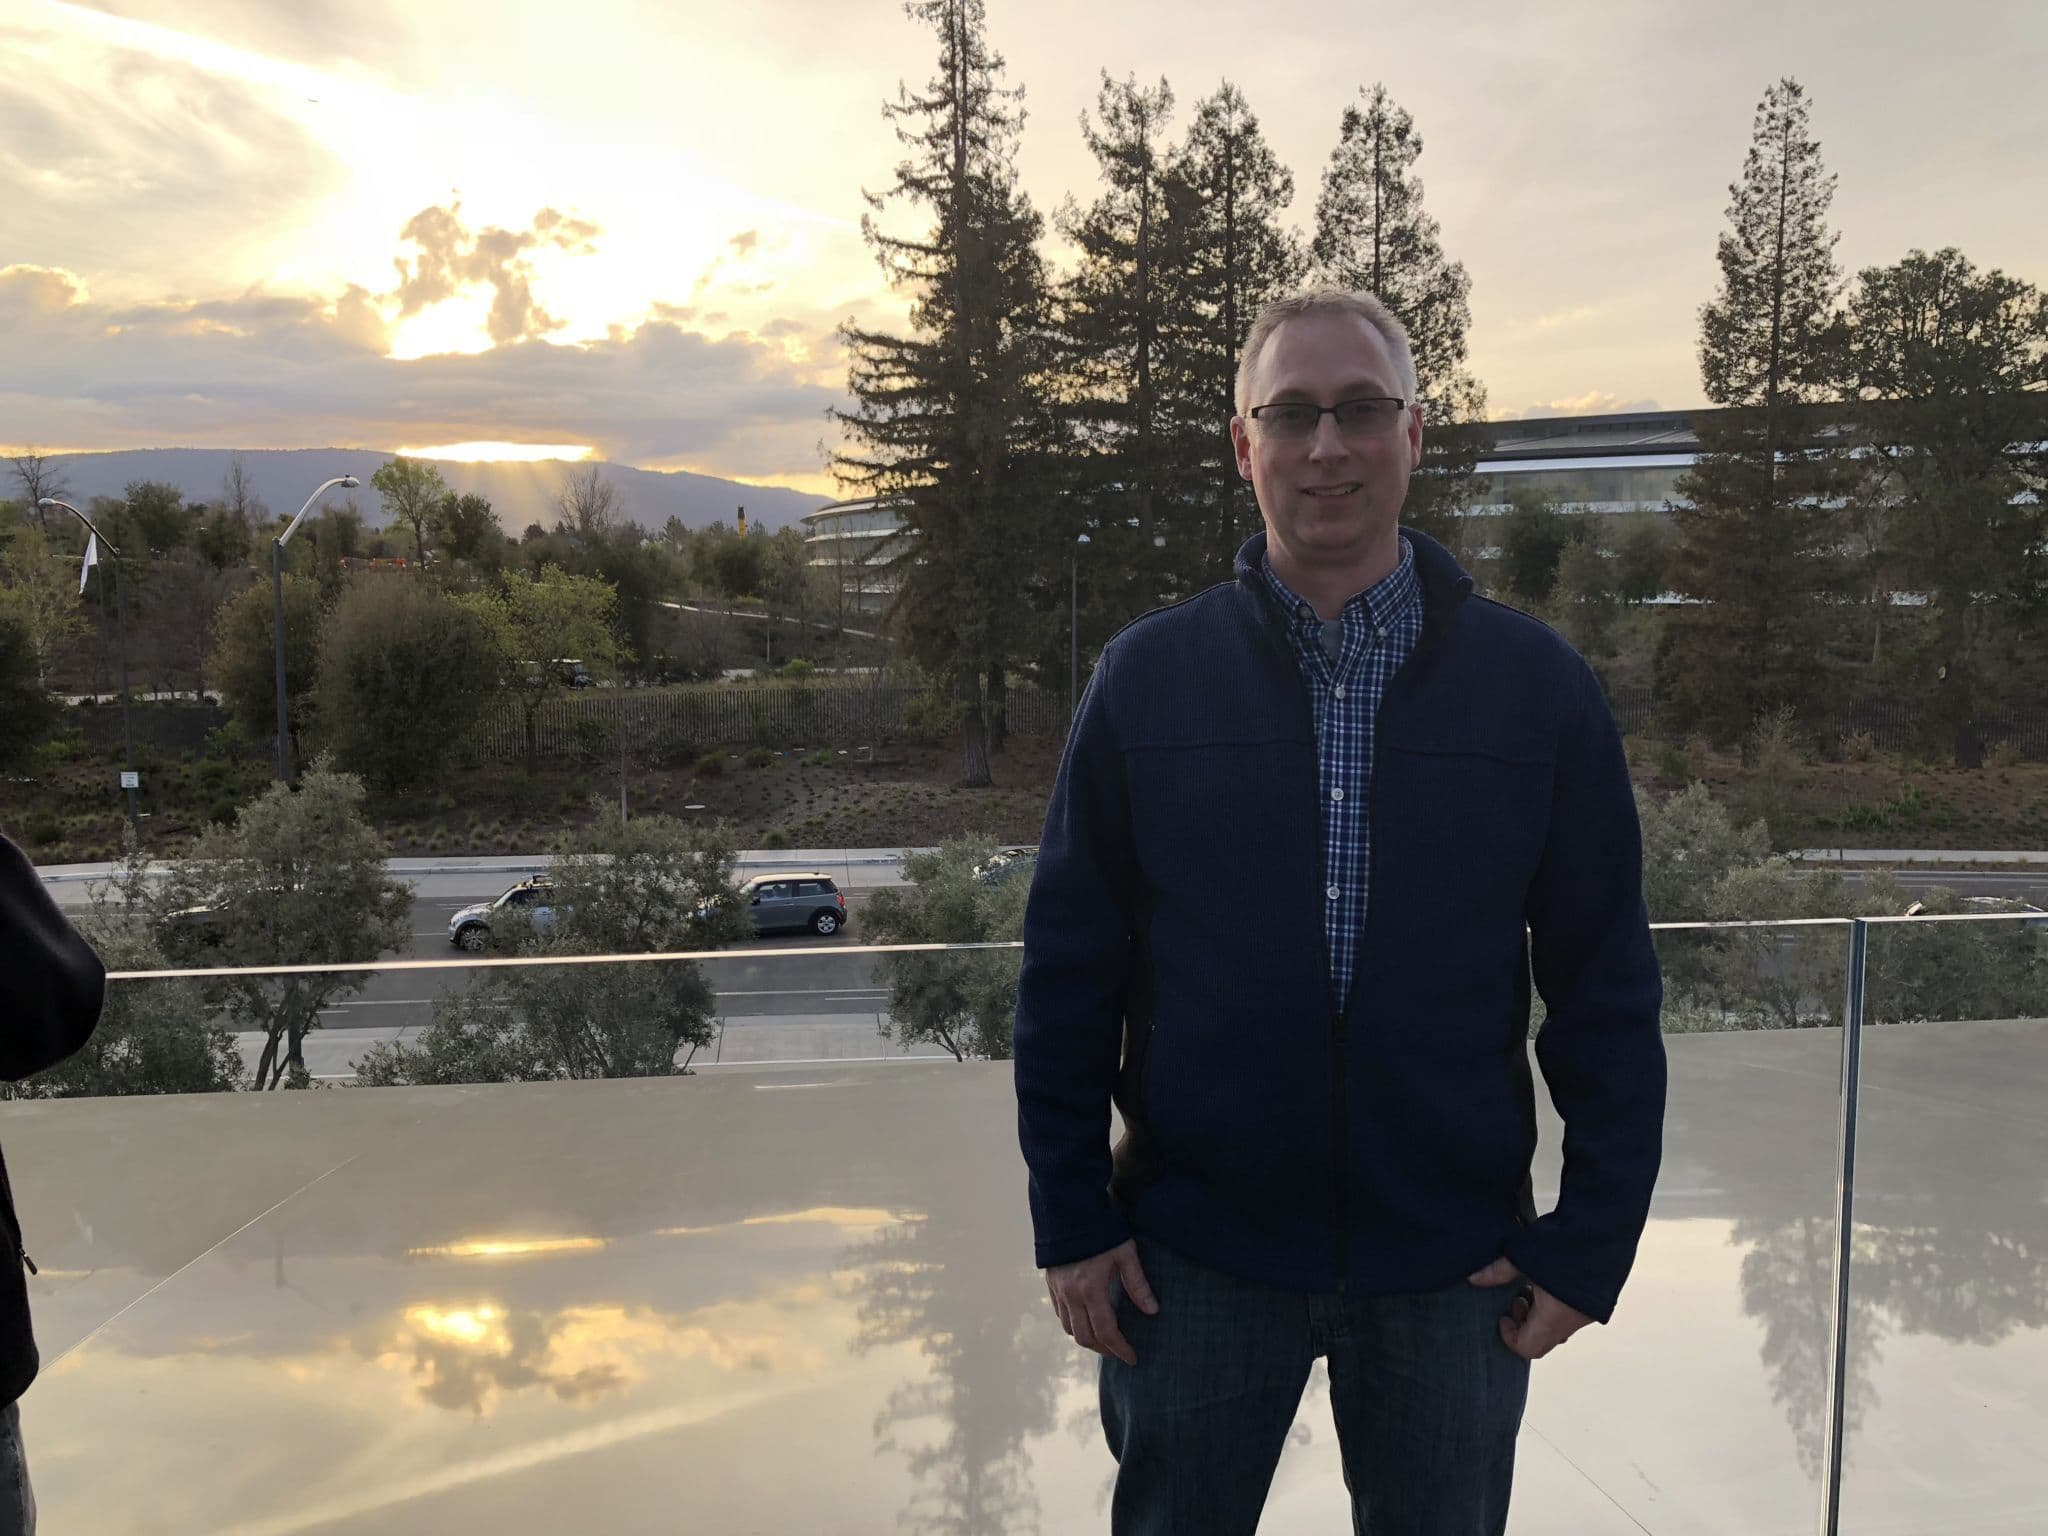 Visit to Apple and FileMaker in California 4